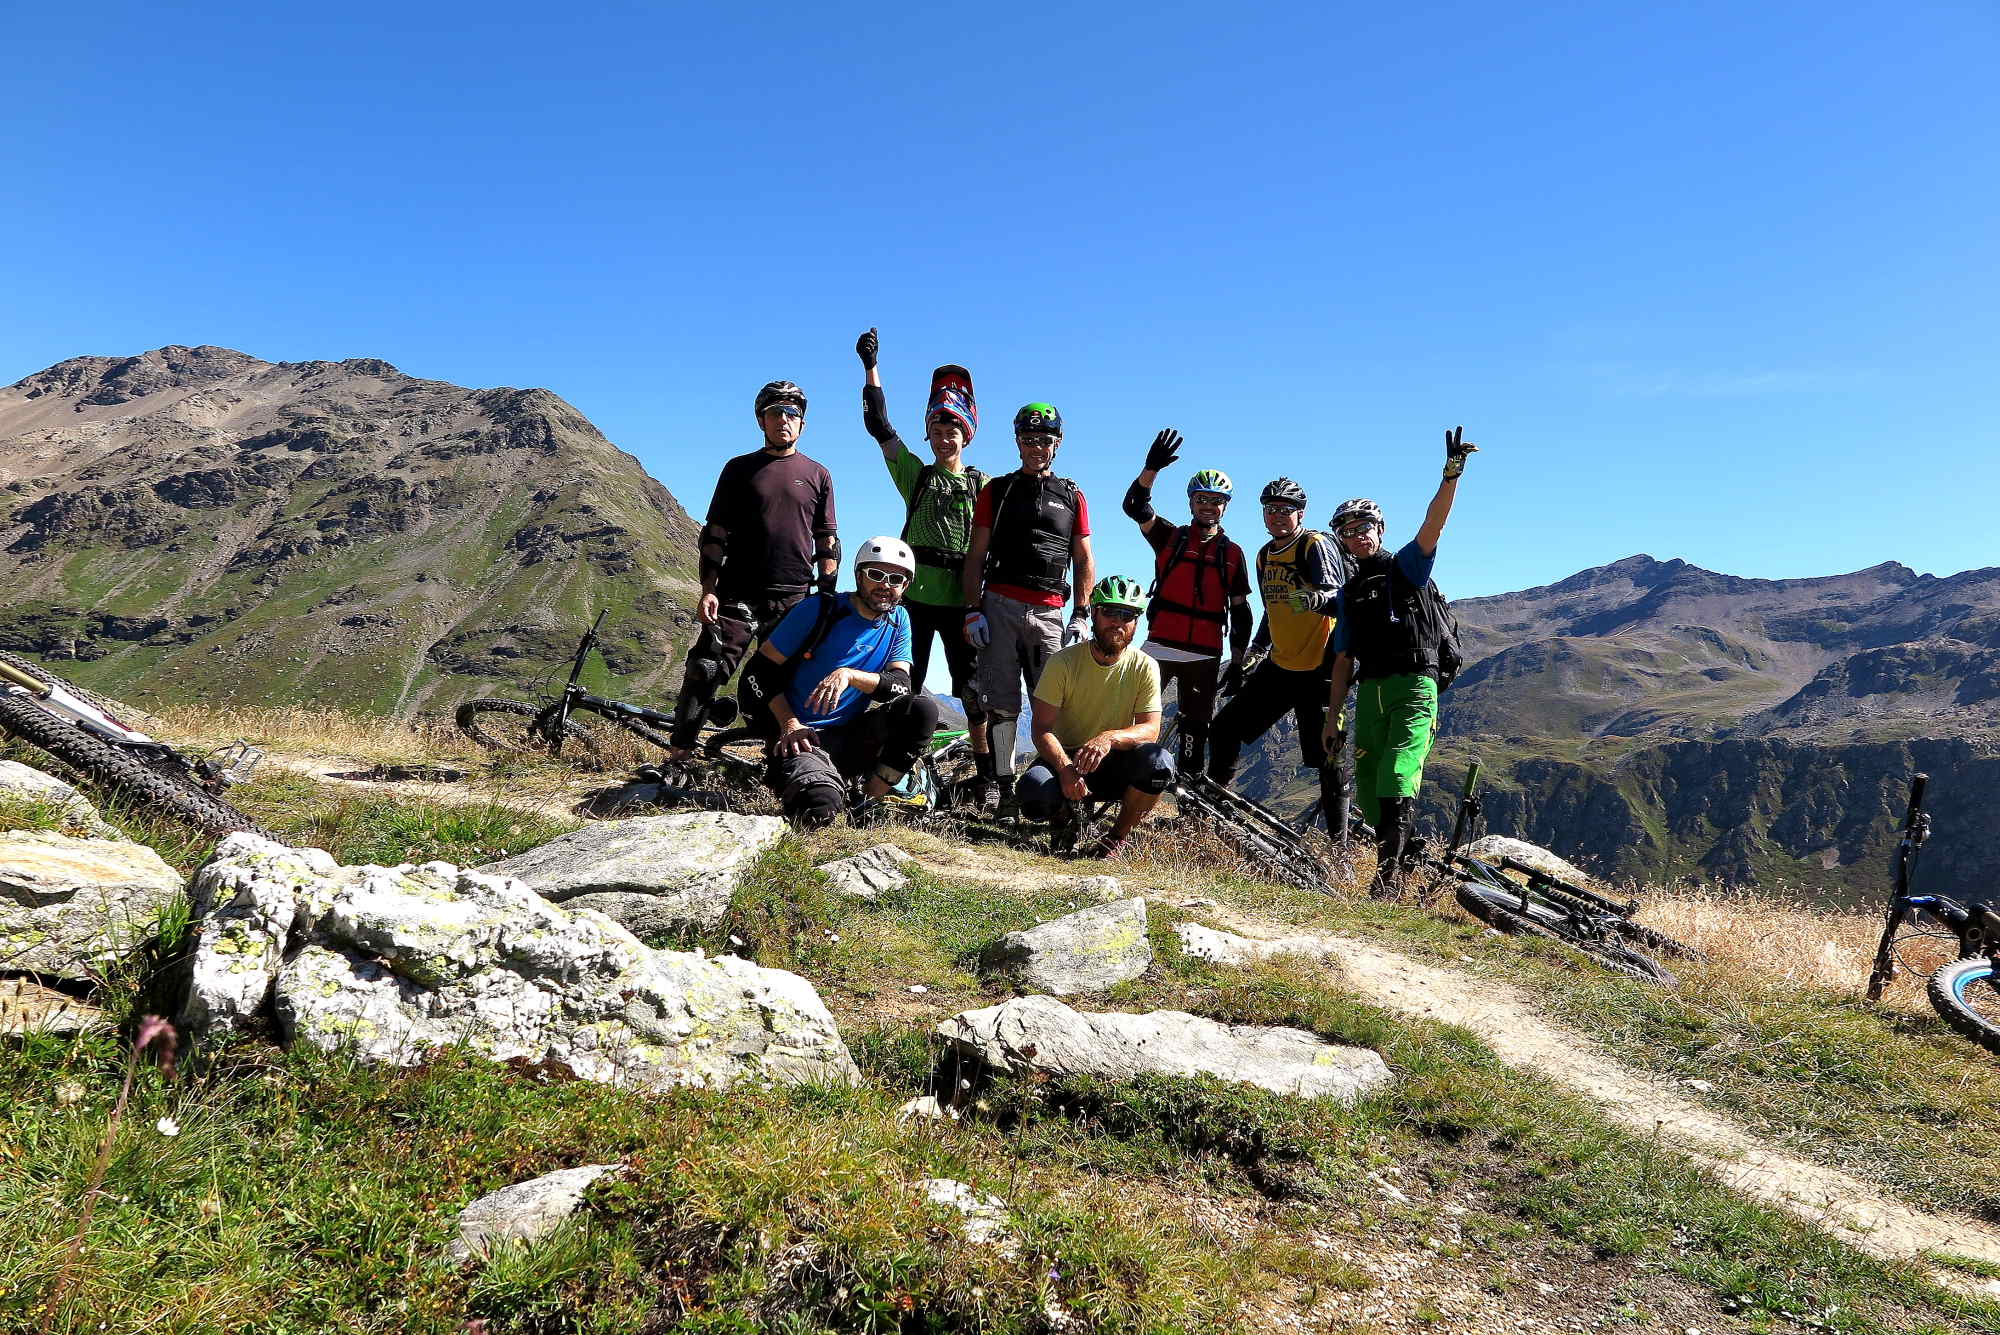 Ride Alpine Trails Mountainbike Freeride & Enduro Camp MTB Freeride Alpin Camp Westalpen Bikebergsteigen Ride on